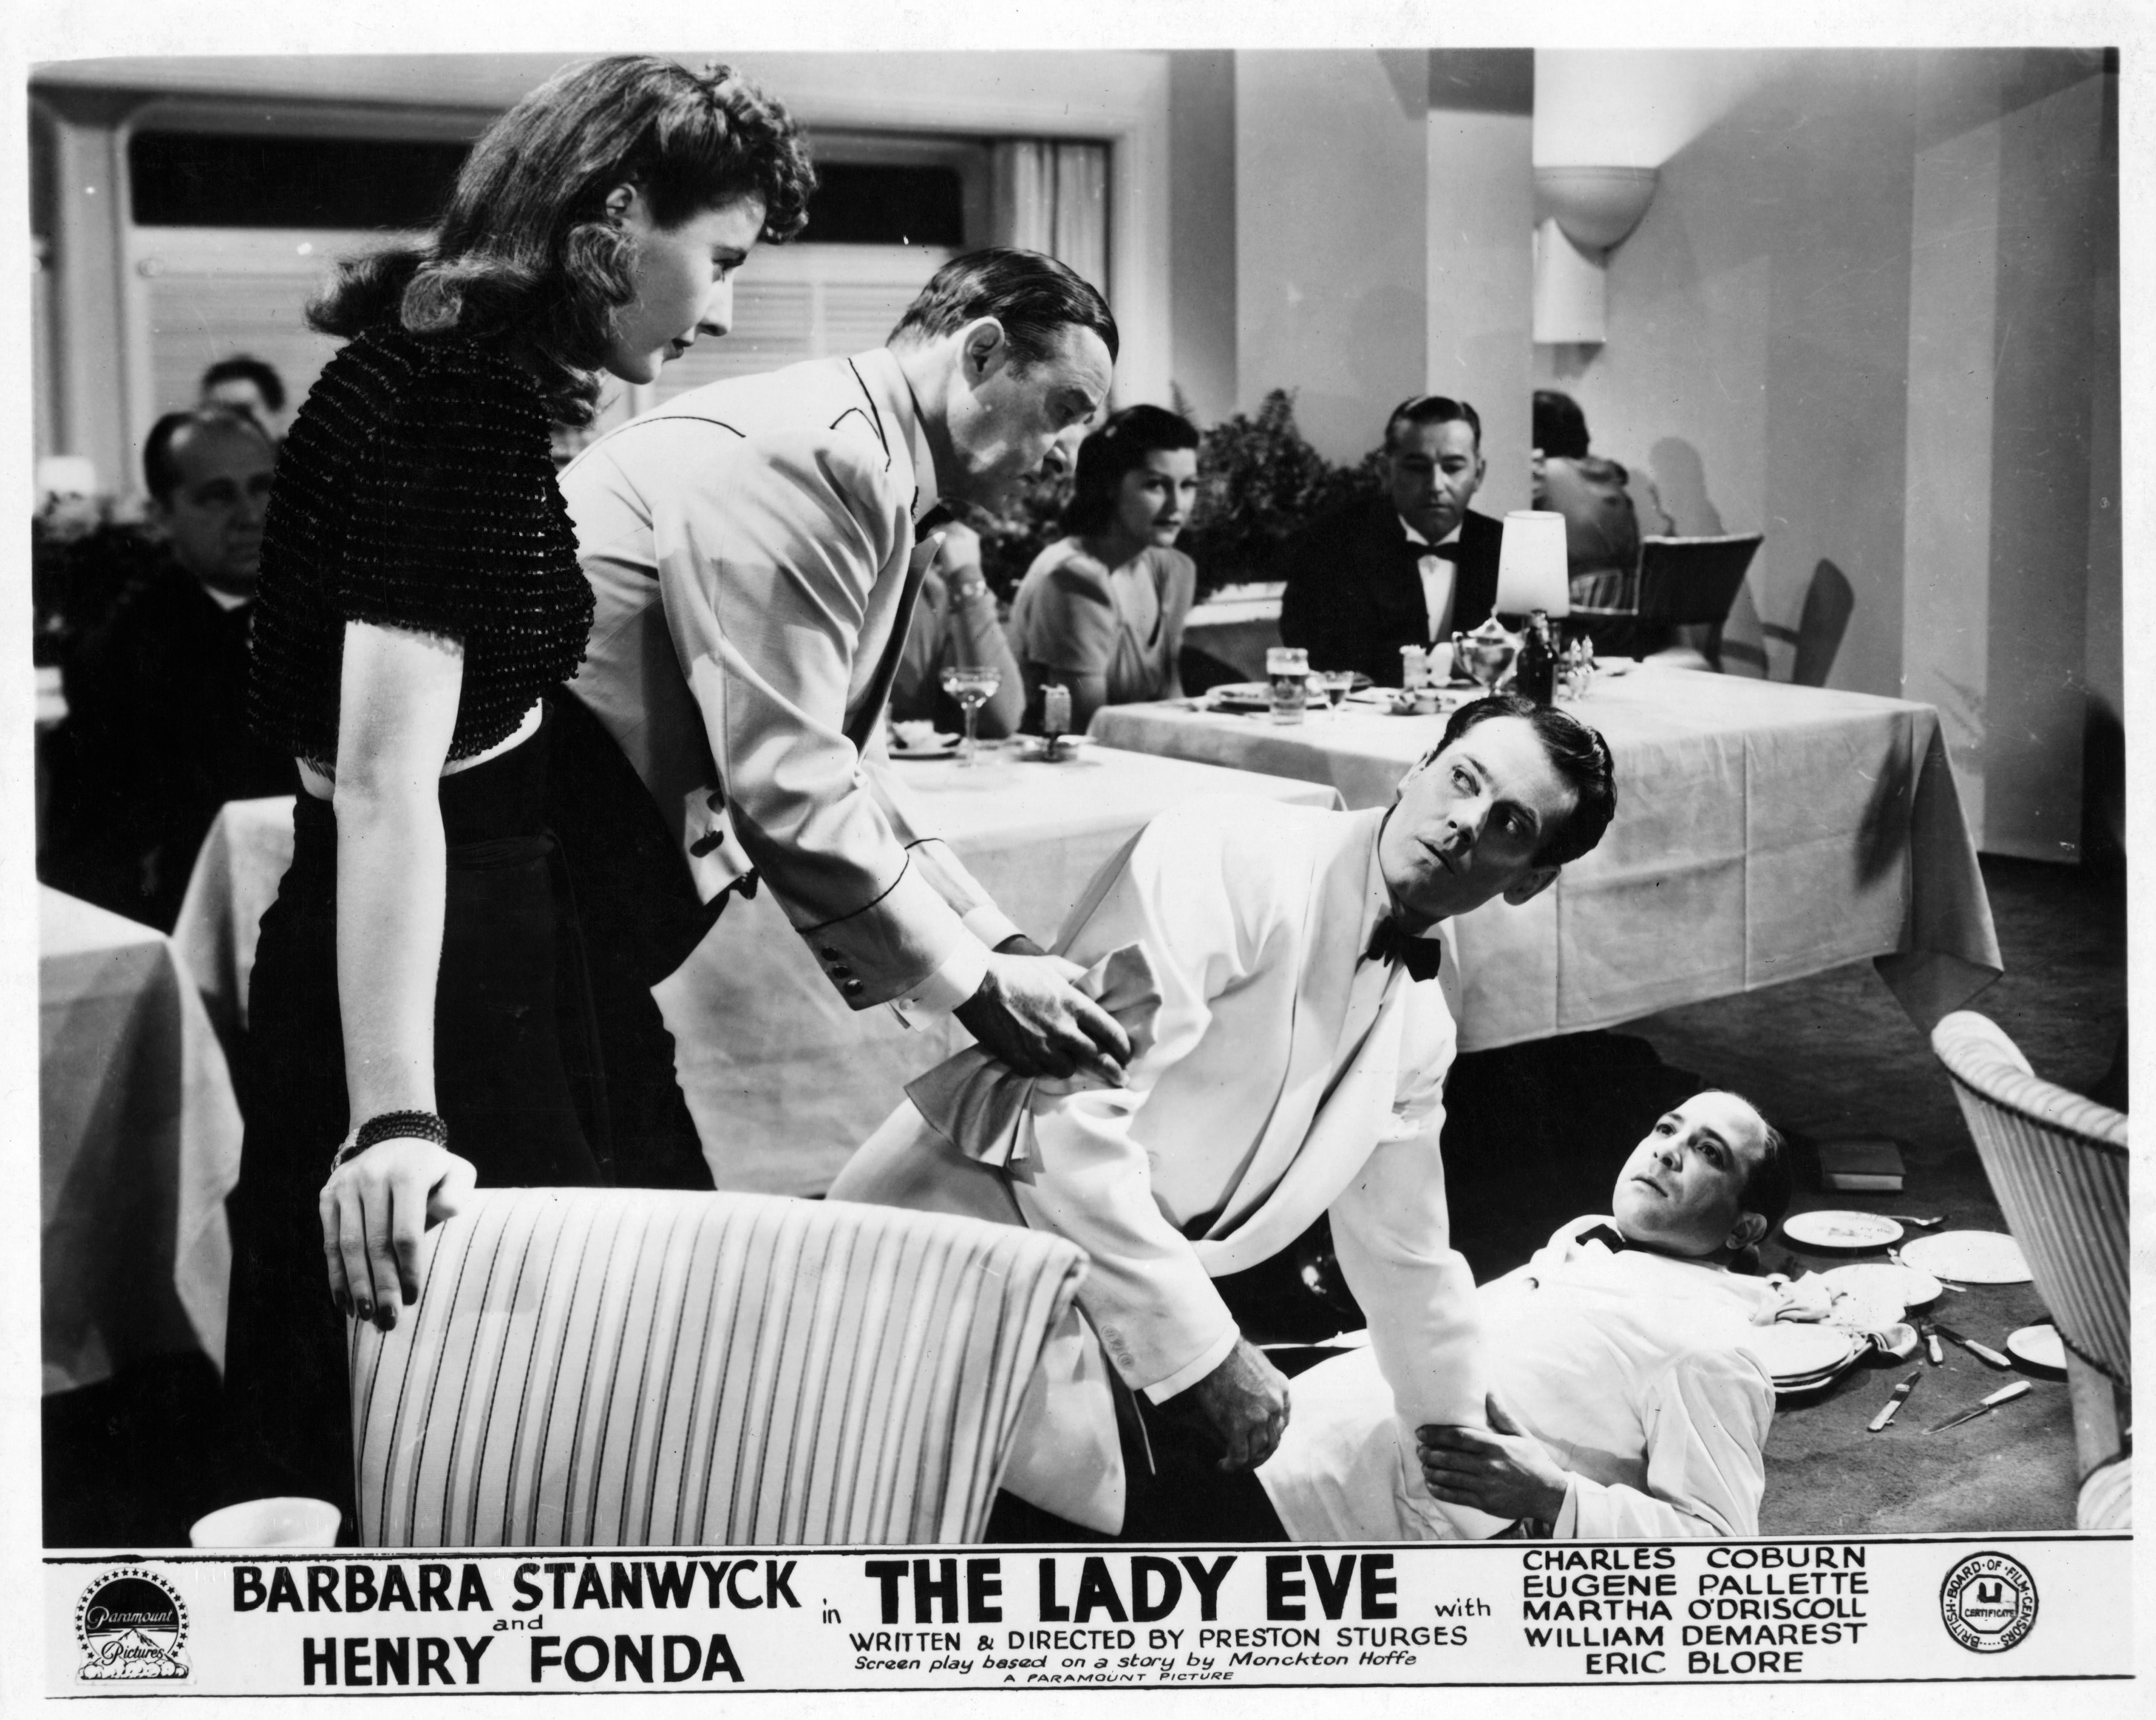 Barbara Stanwyck And Henry Fonda In 'The Lady Eve'